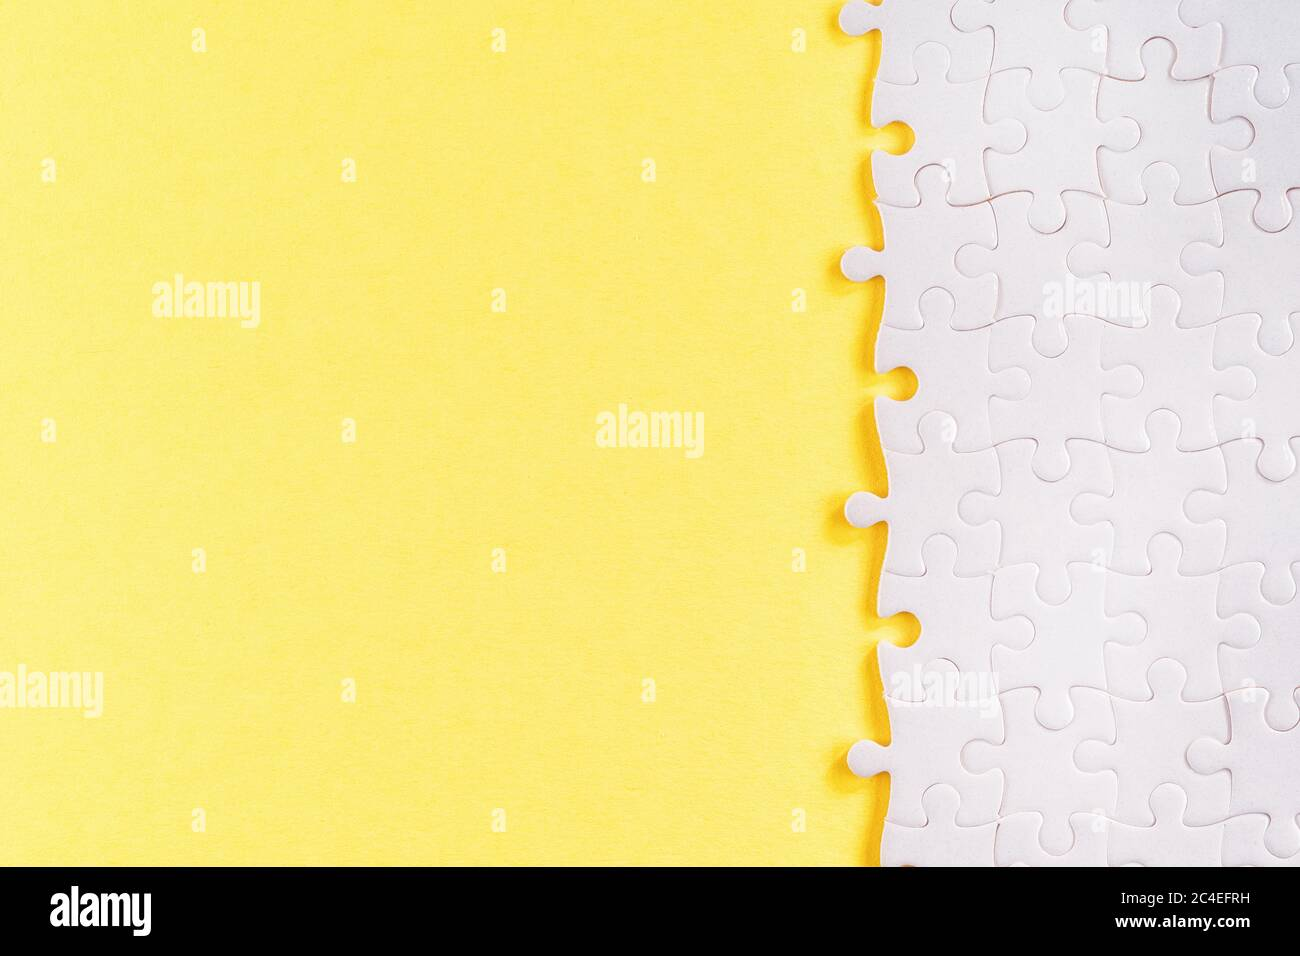 White jigsaw puzzle pieces on yellow. Abstract template and background with copy space Stock Photo